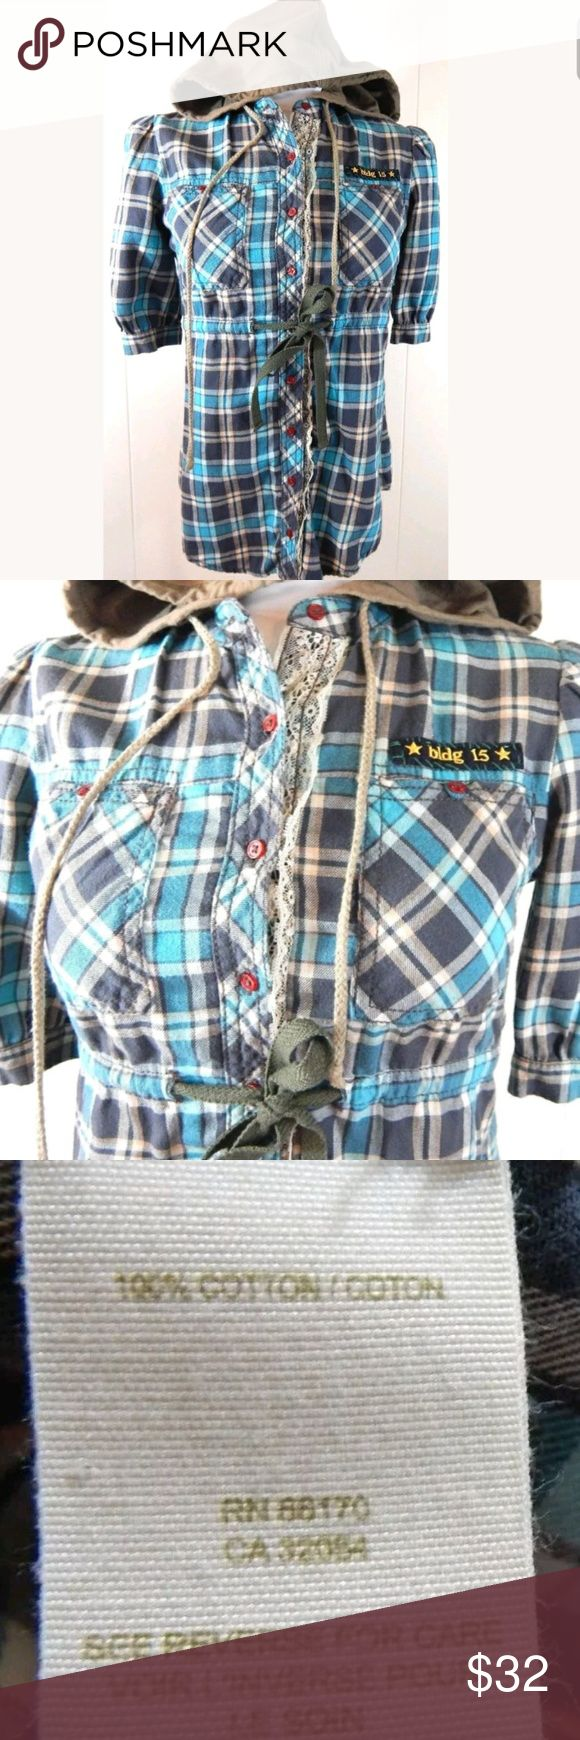 """Free People Hooded Plaid Flannel Shirt Plaid hooded short sleeve flannel by free people. Button front style with lace and patch details. Grungy style reminiscent of scouts and summer camp. Size 2, 35"""" bust and 24"""" length. 100% cotton. Gently loved with minimal wear. No trades. Free People Tops Button Down Shirts"""